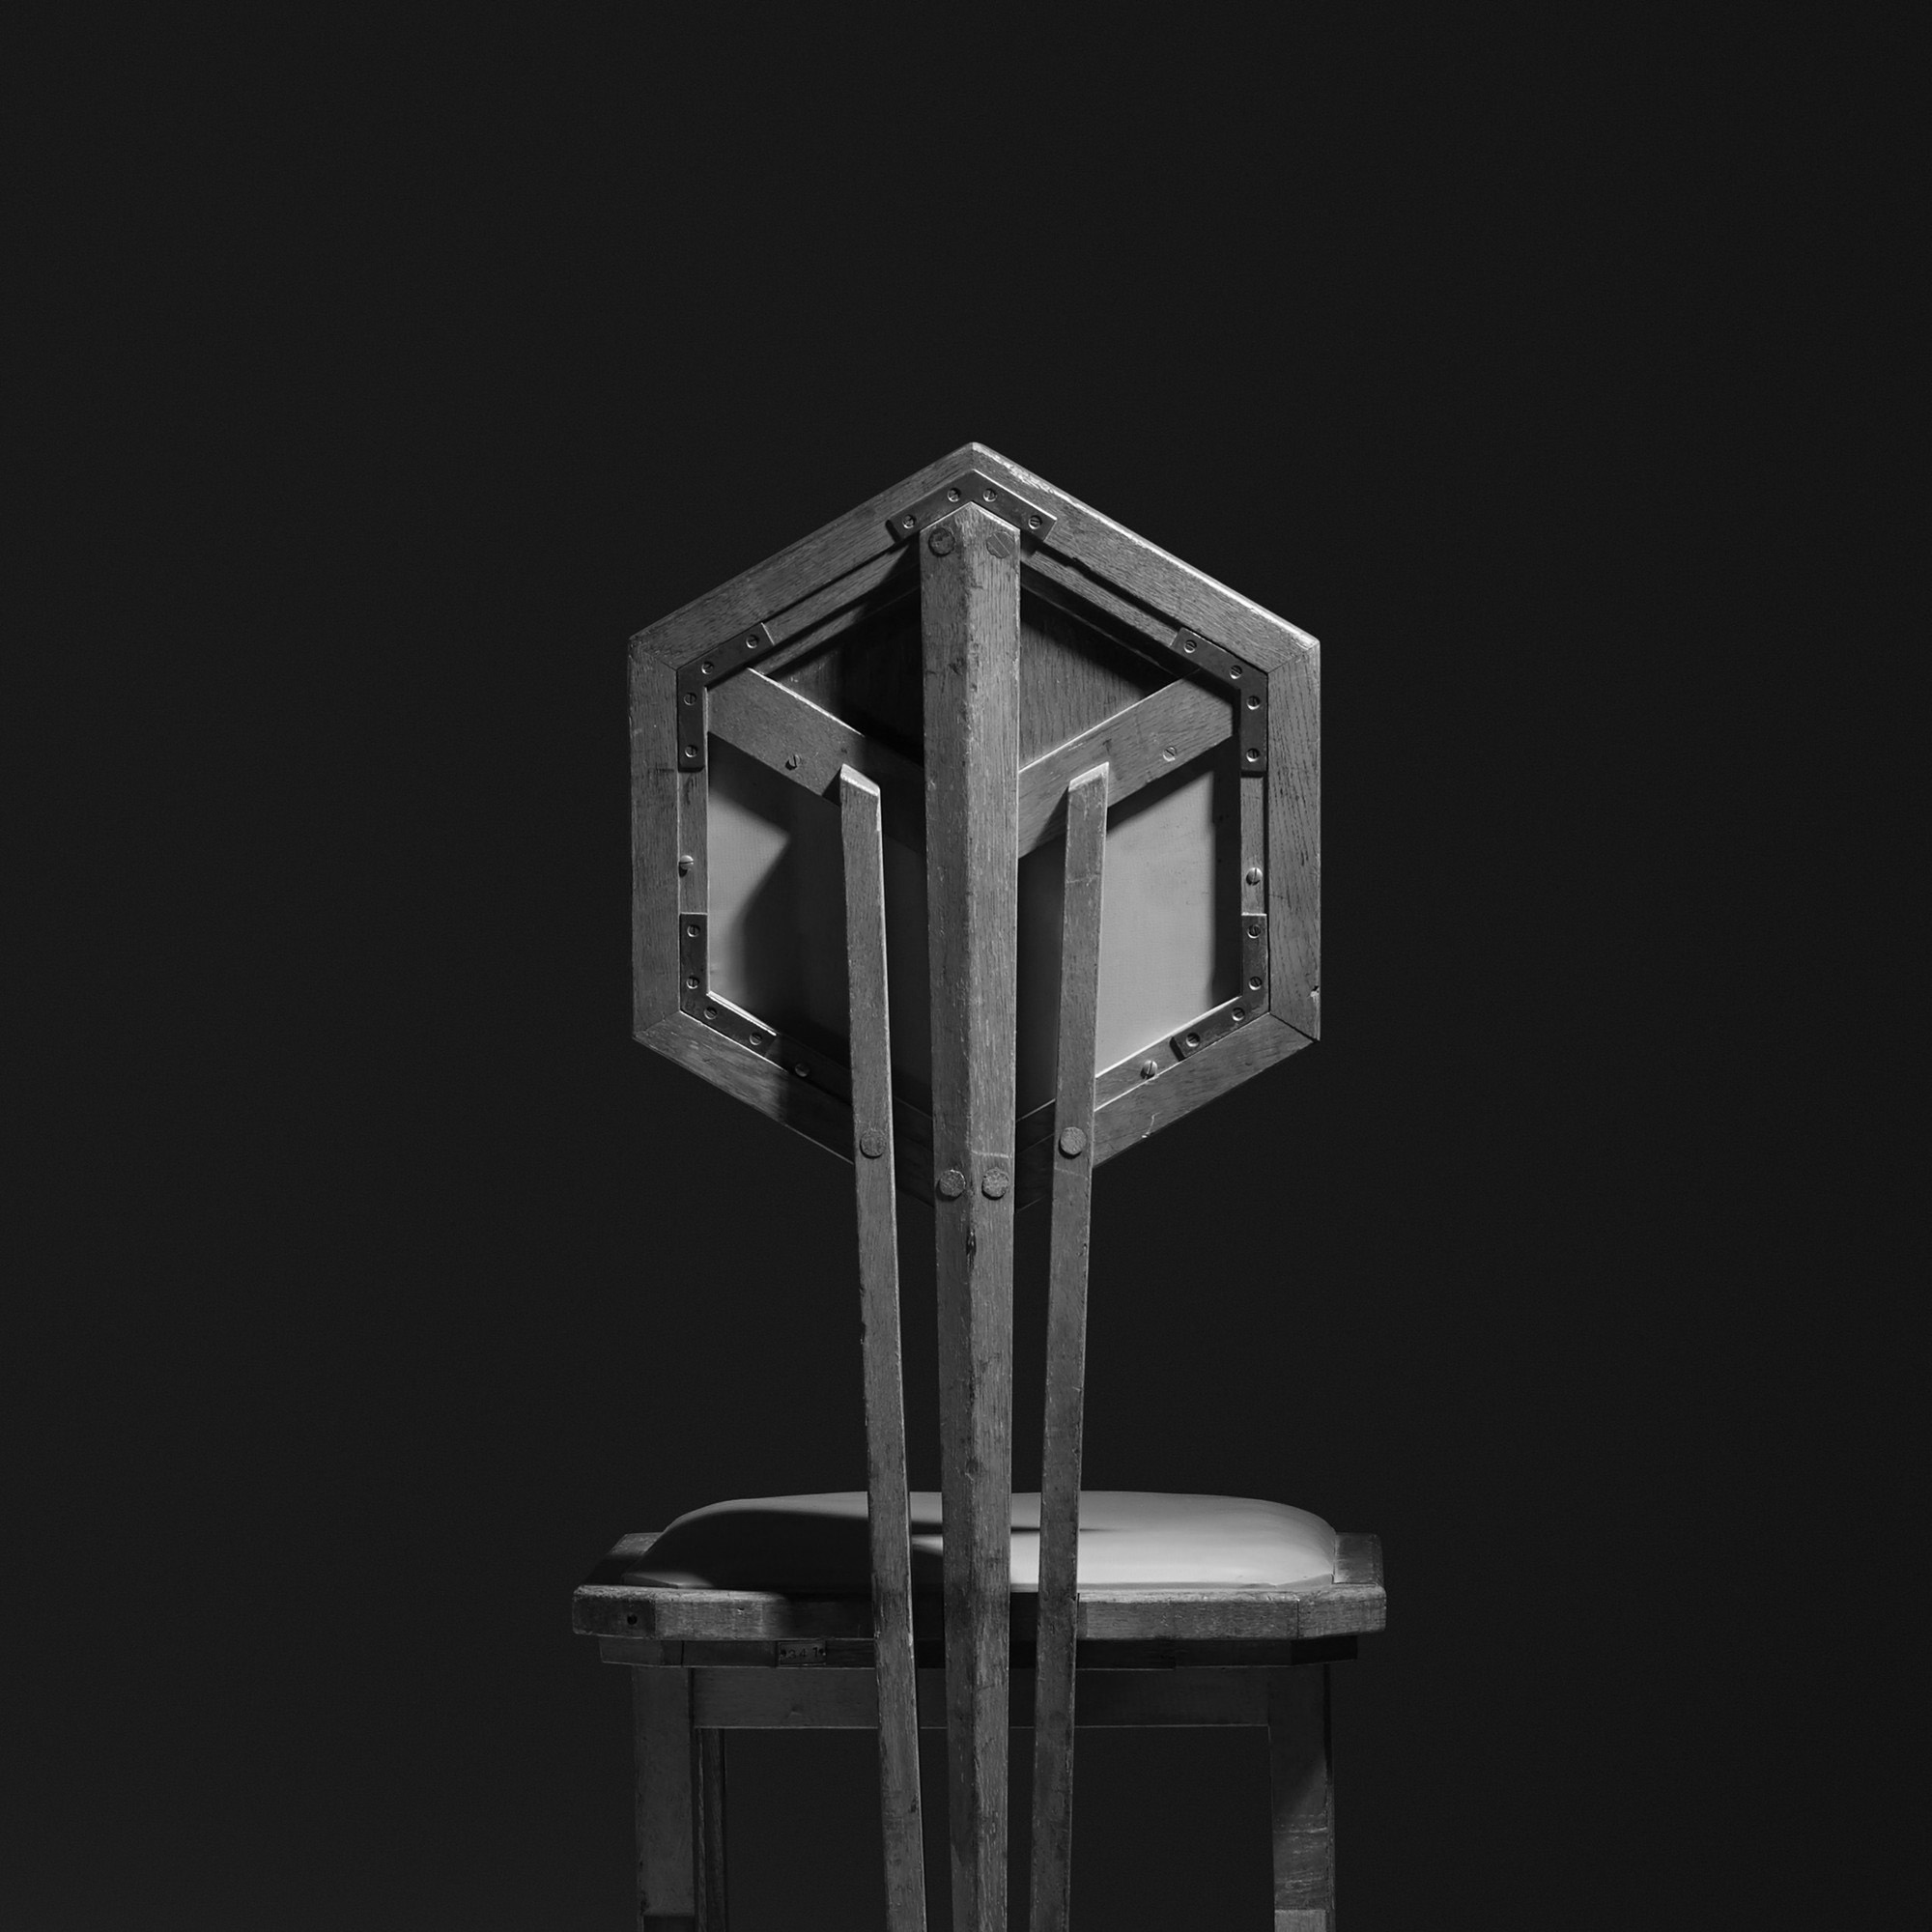 156_7_important_design_december_2014_frank_lloyd_wright_chair_from_the_imperial_hotel_tokyo__wright_auction-1.jpg